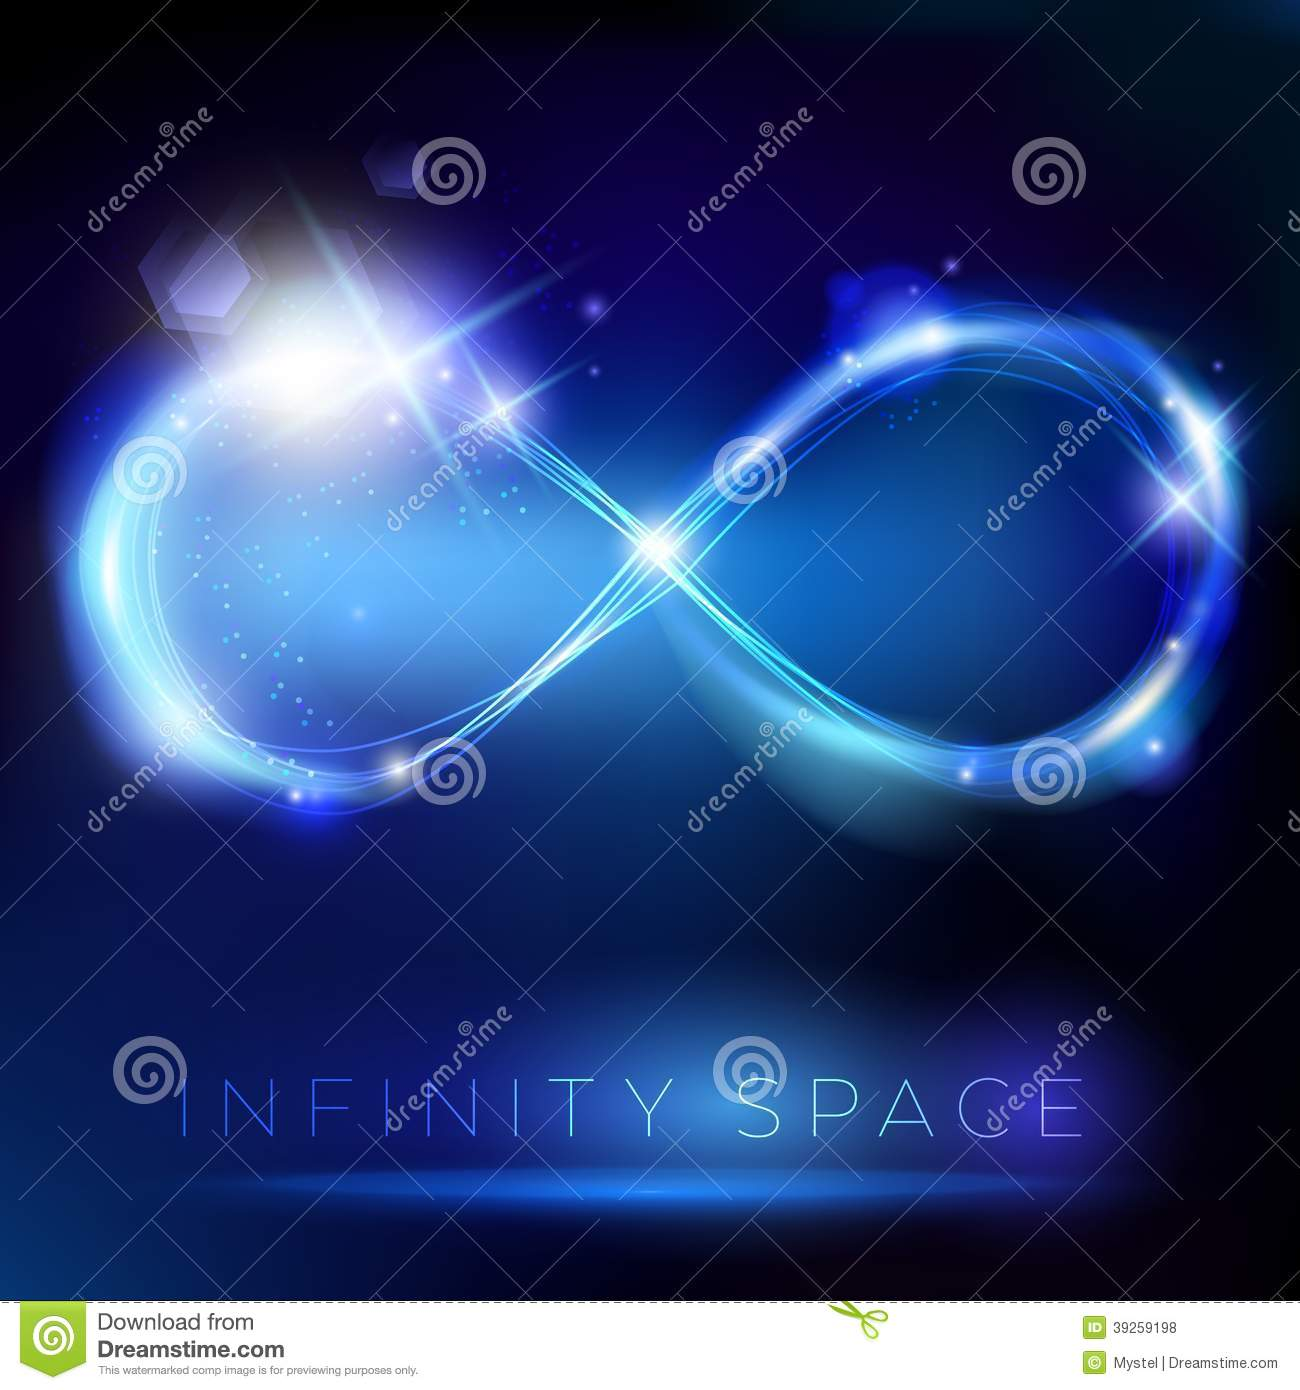 Royalty Free Stock Photos Blue Light Infinity Symbol Lights Effects Placeholder Image39259198 on Gold Circle Frame